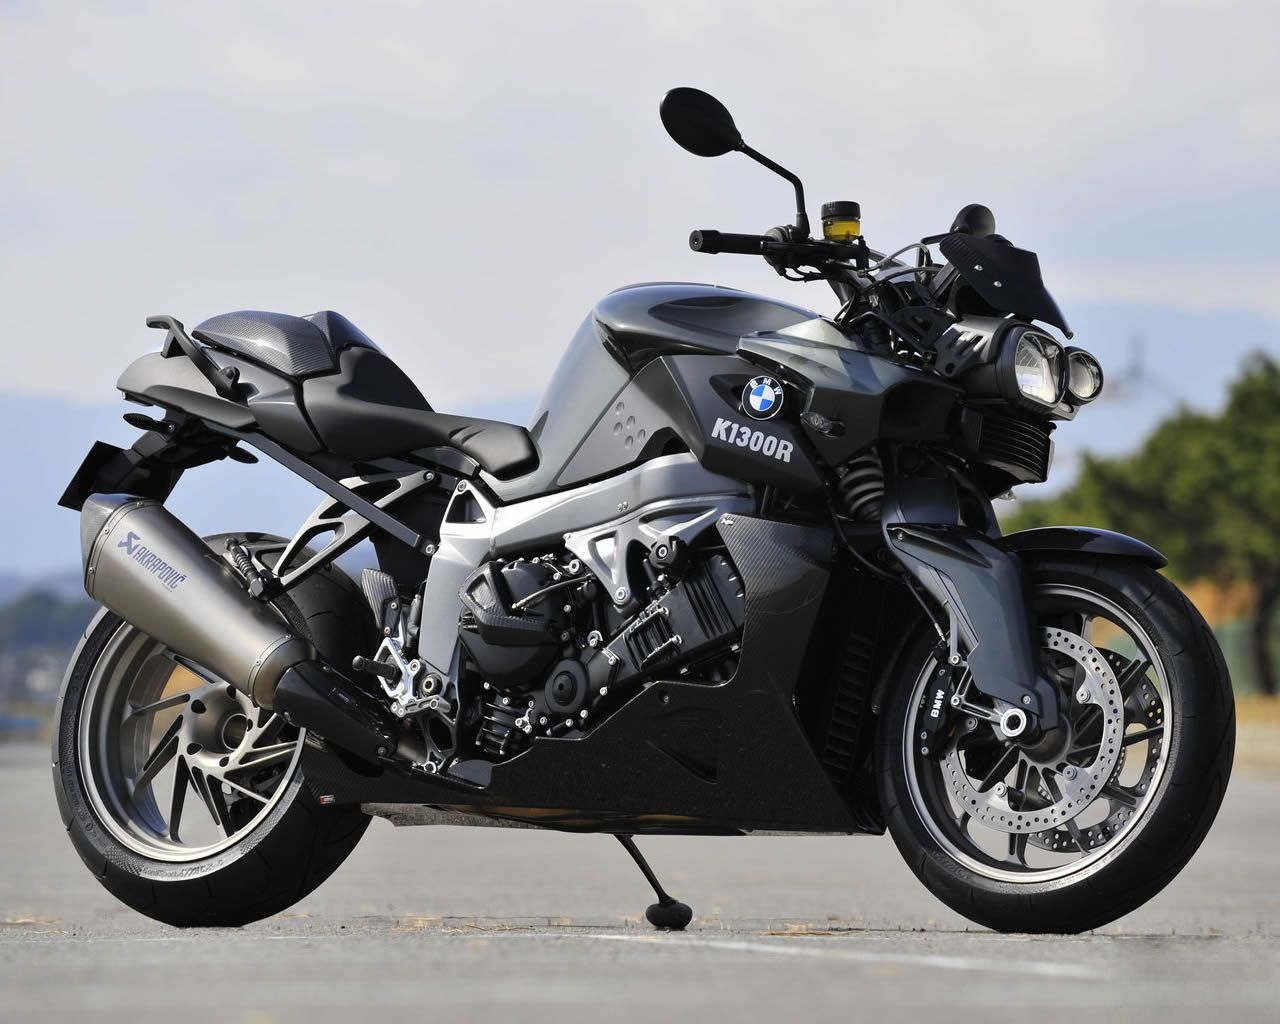 Bmw K1300 R Do You Like This Superbike Super Bikes Bmw Motorcycle